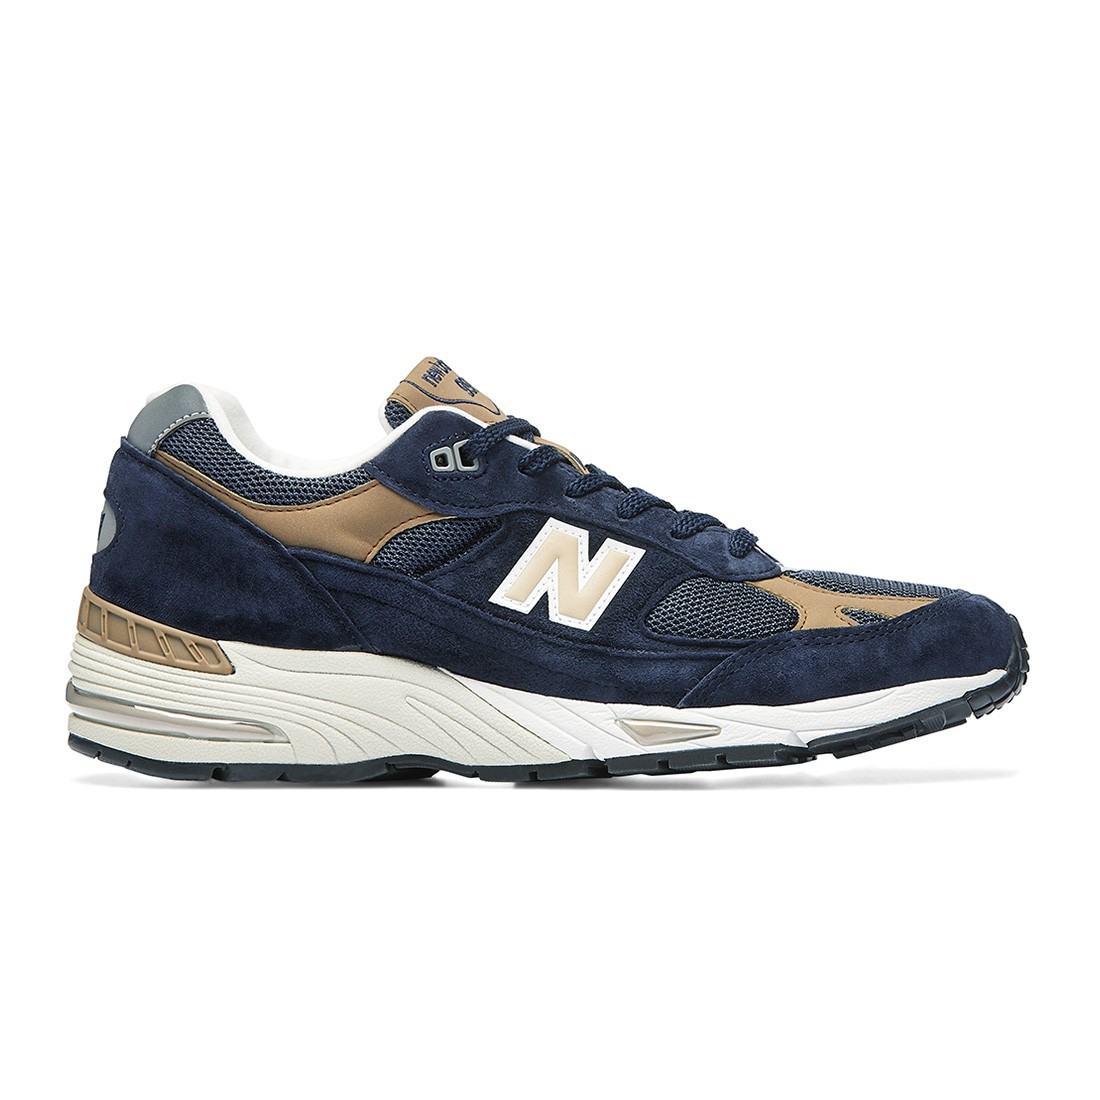 New Balance Men 991 M991DNB - Made In UK (navy / sand)